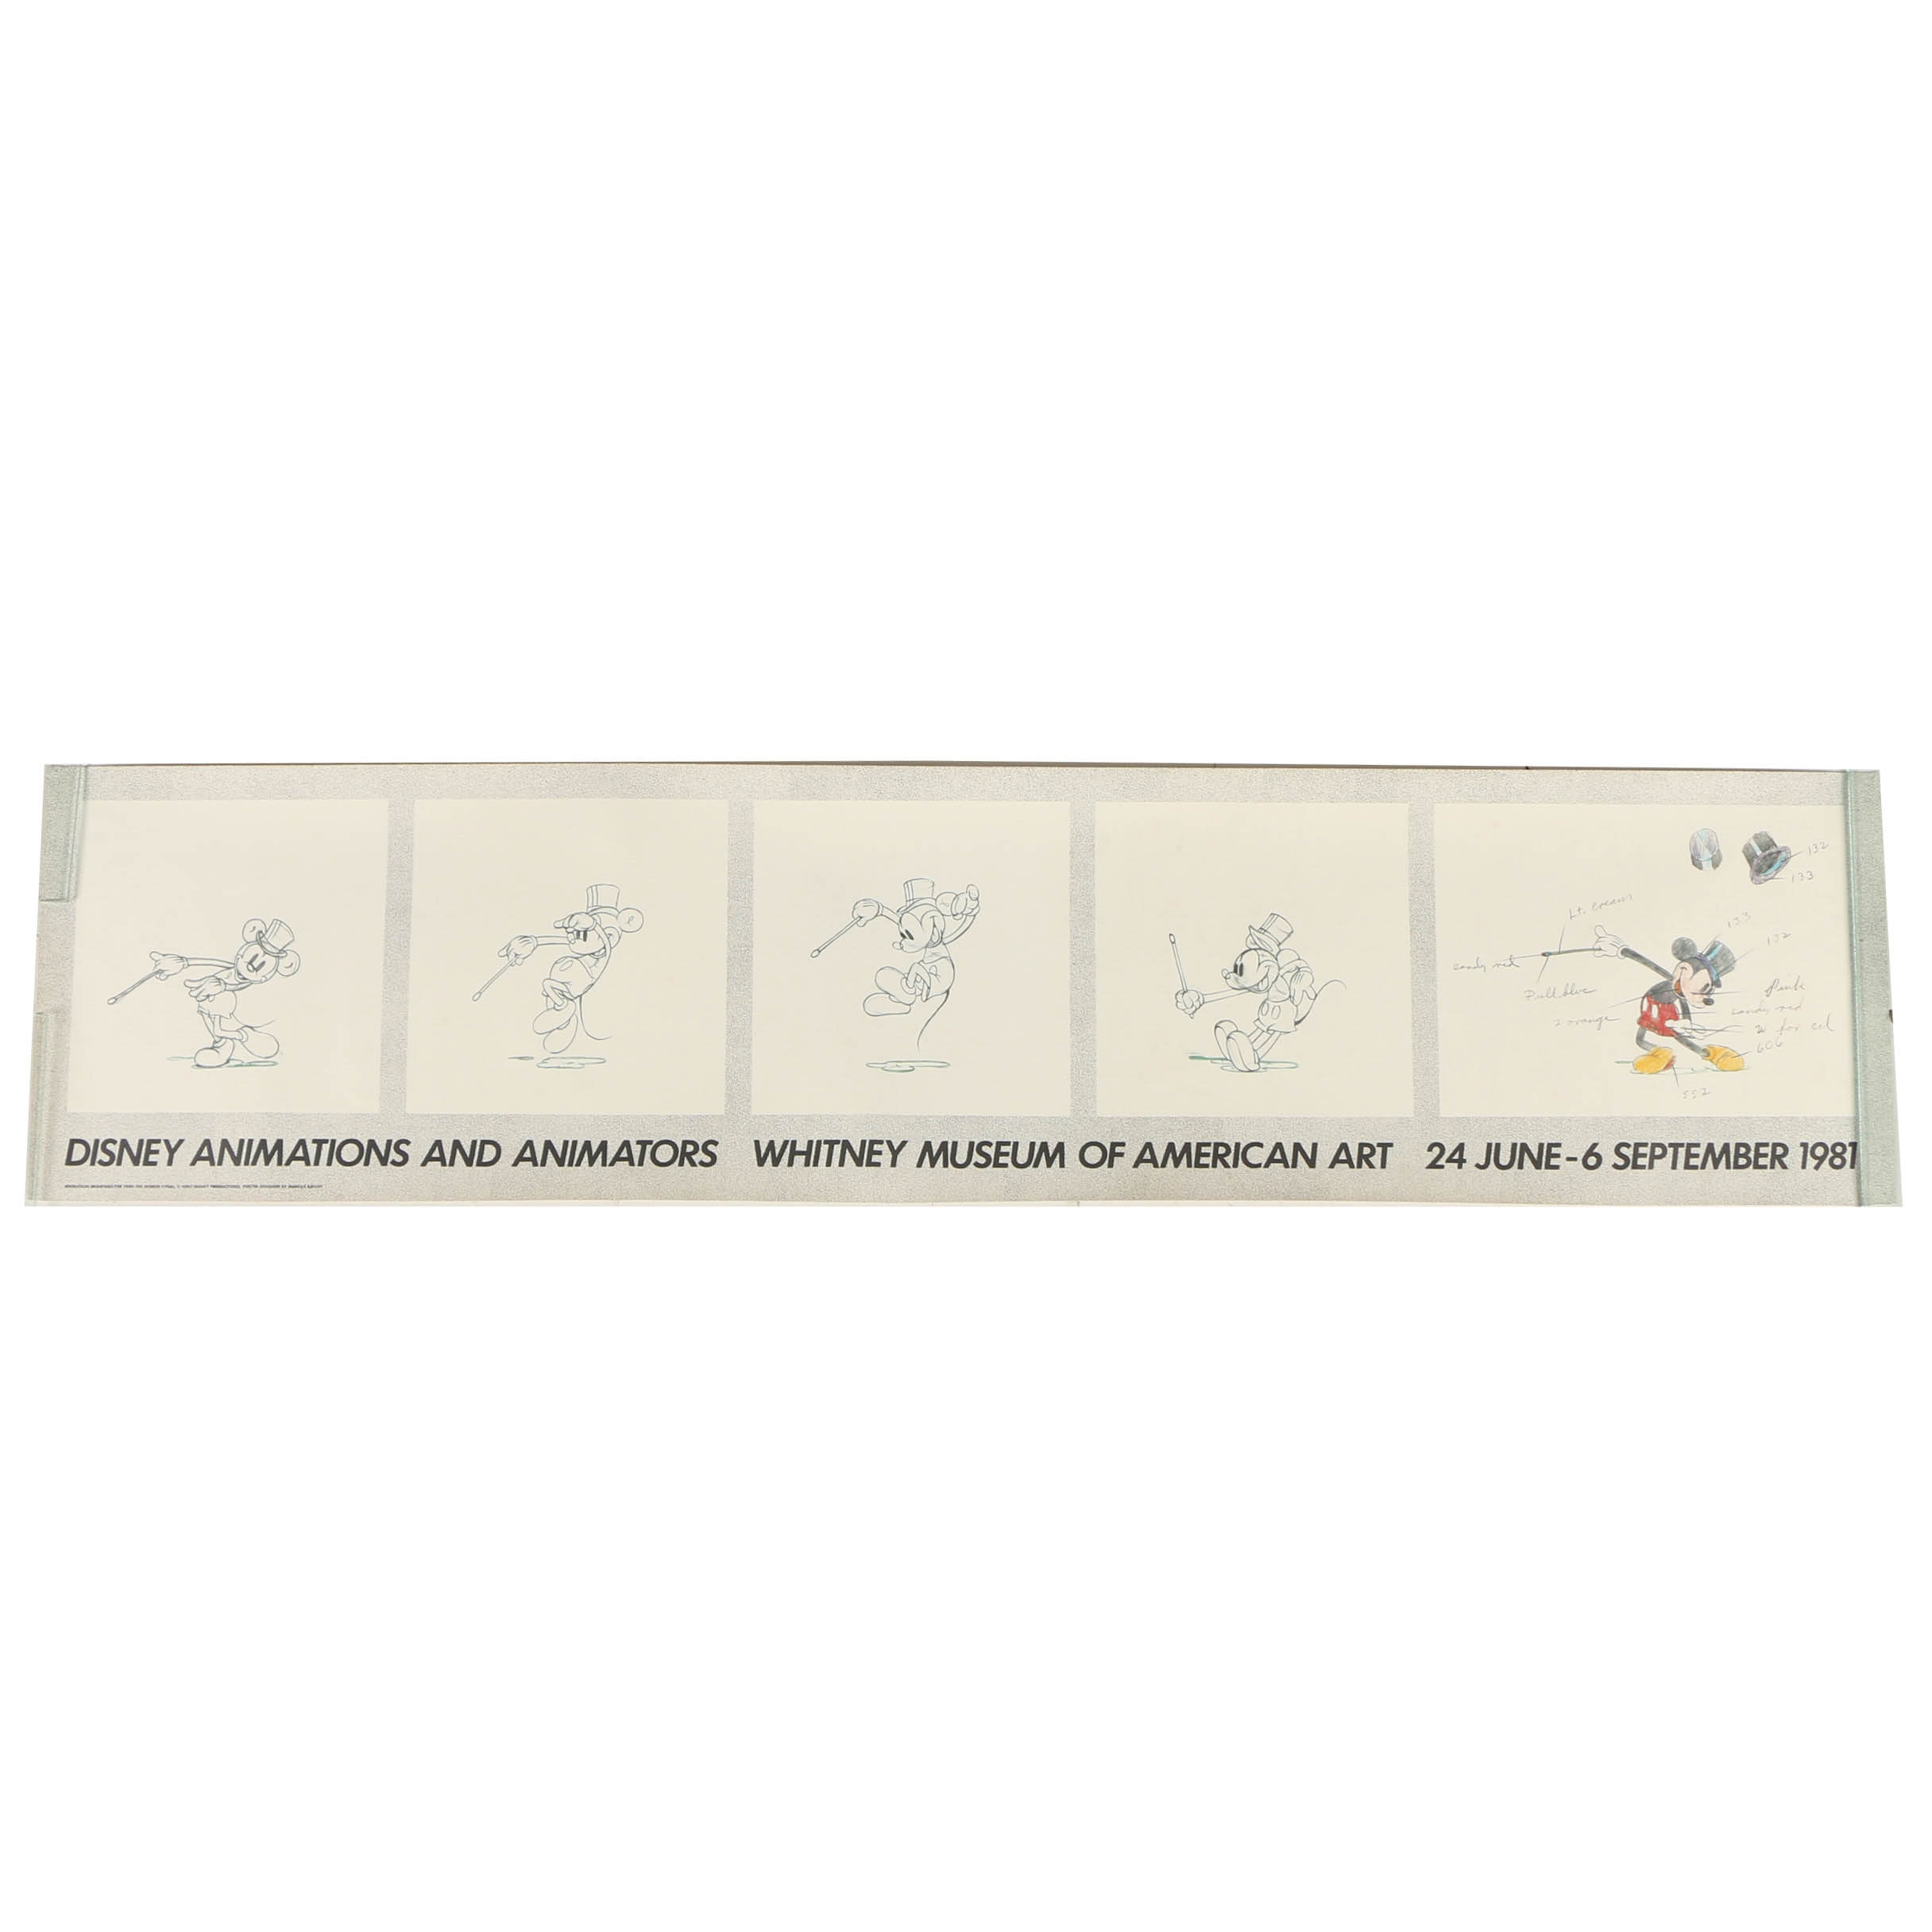 Offset Lithograph Poster of Mickey Mouse Animation Drawings